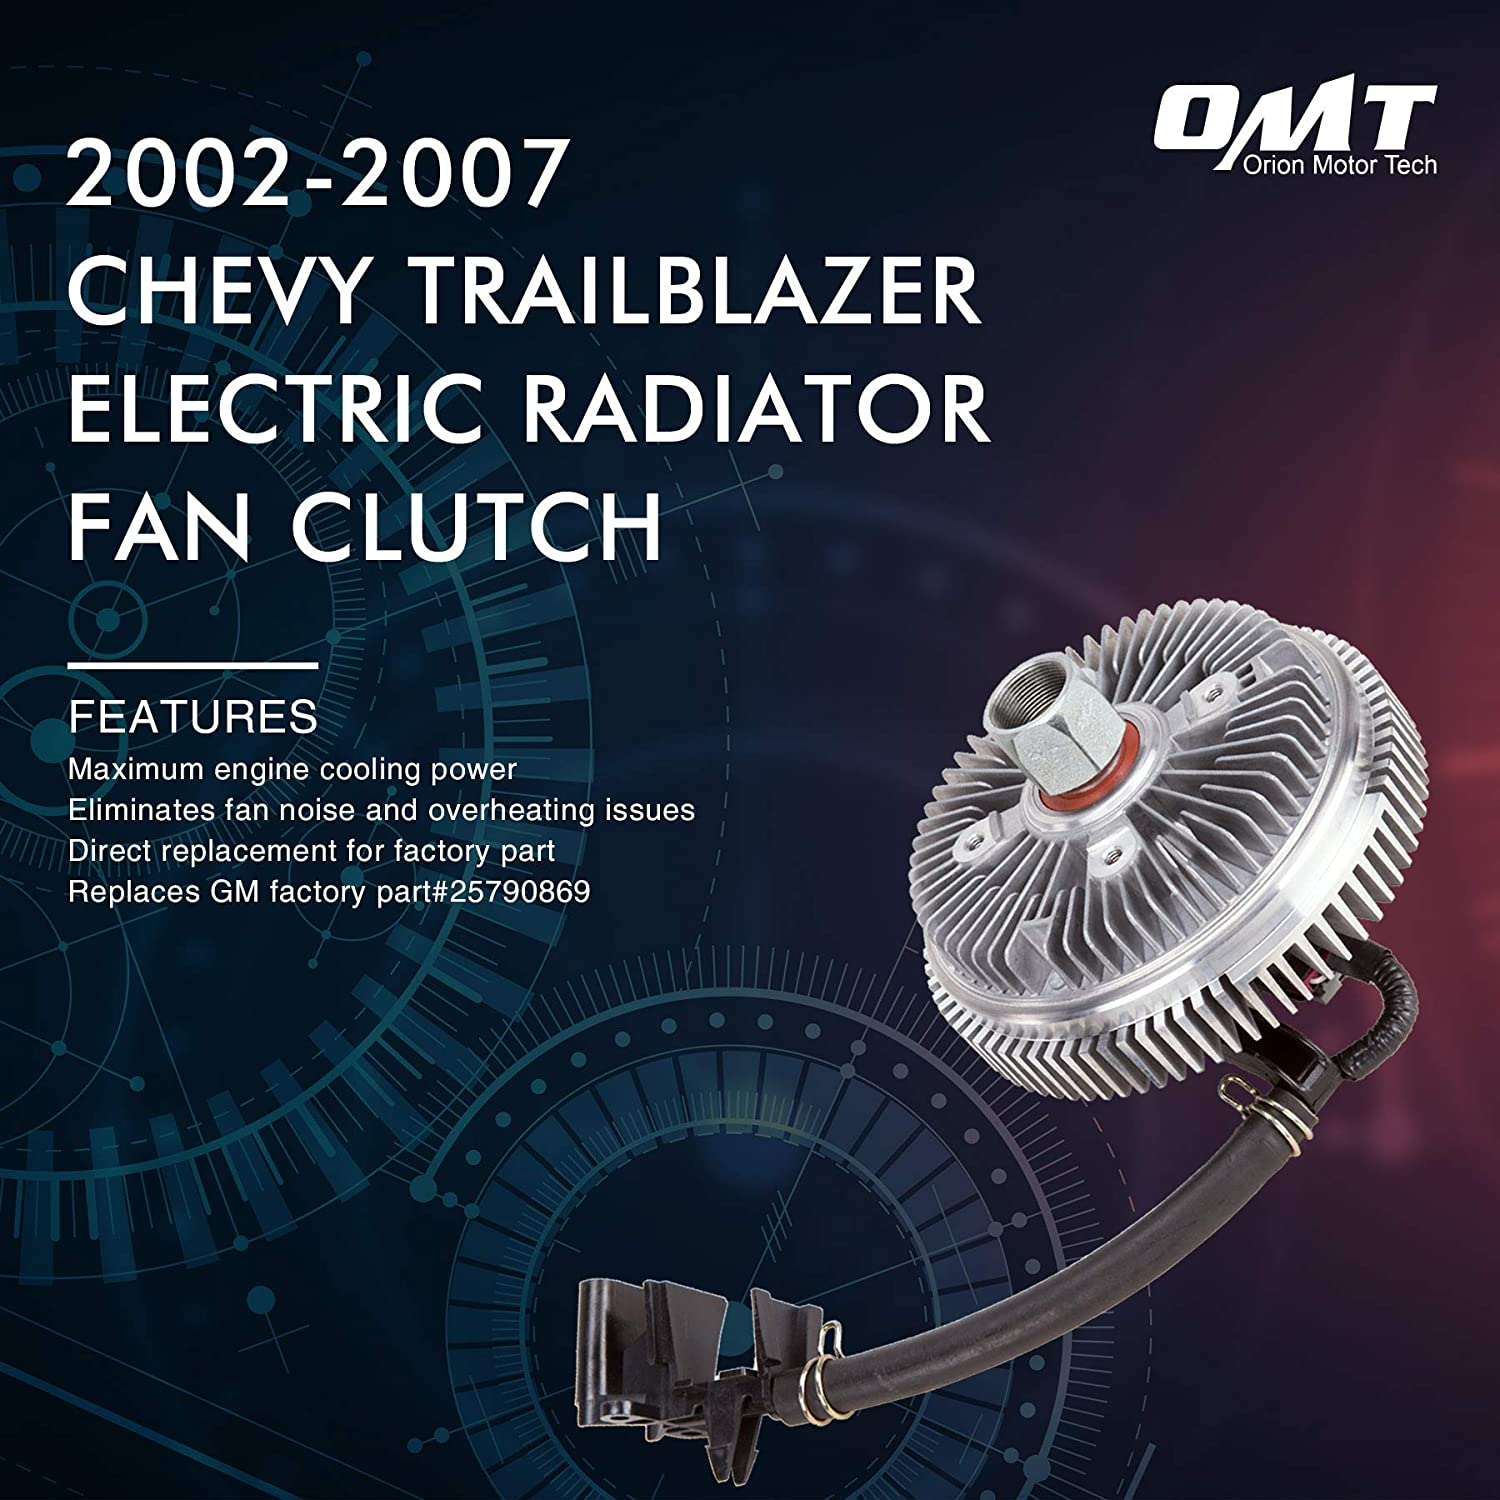 Orion Motor Tech Cooling Fan Clutch Electric Radiator, Compatible with  2002-2007 Chevy Trailblazer and GMC Envoy, Replaces# 25790869